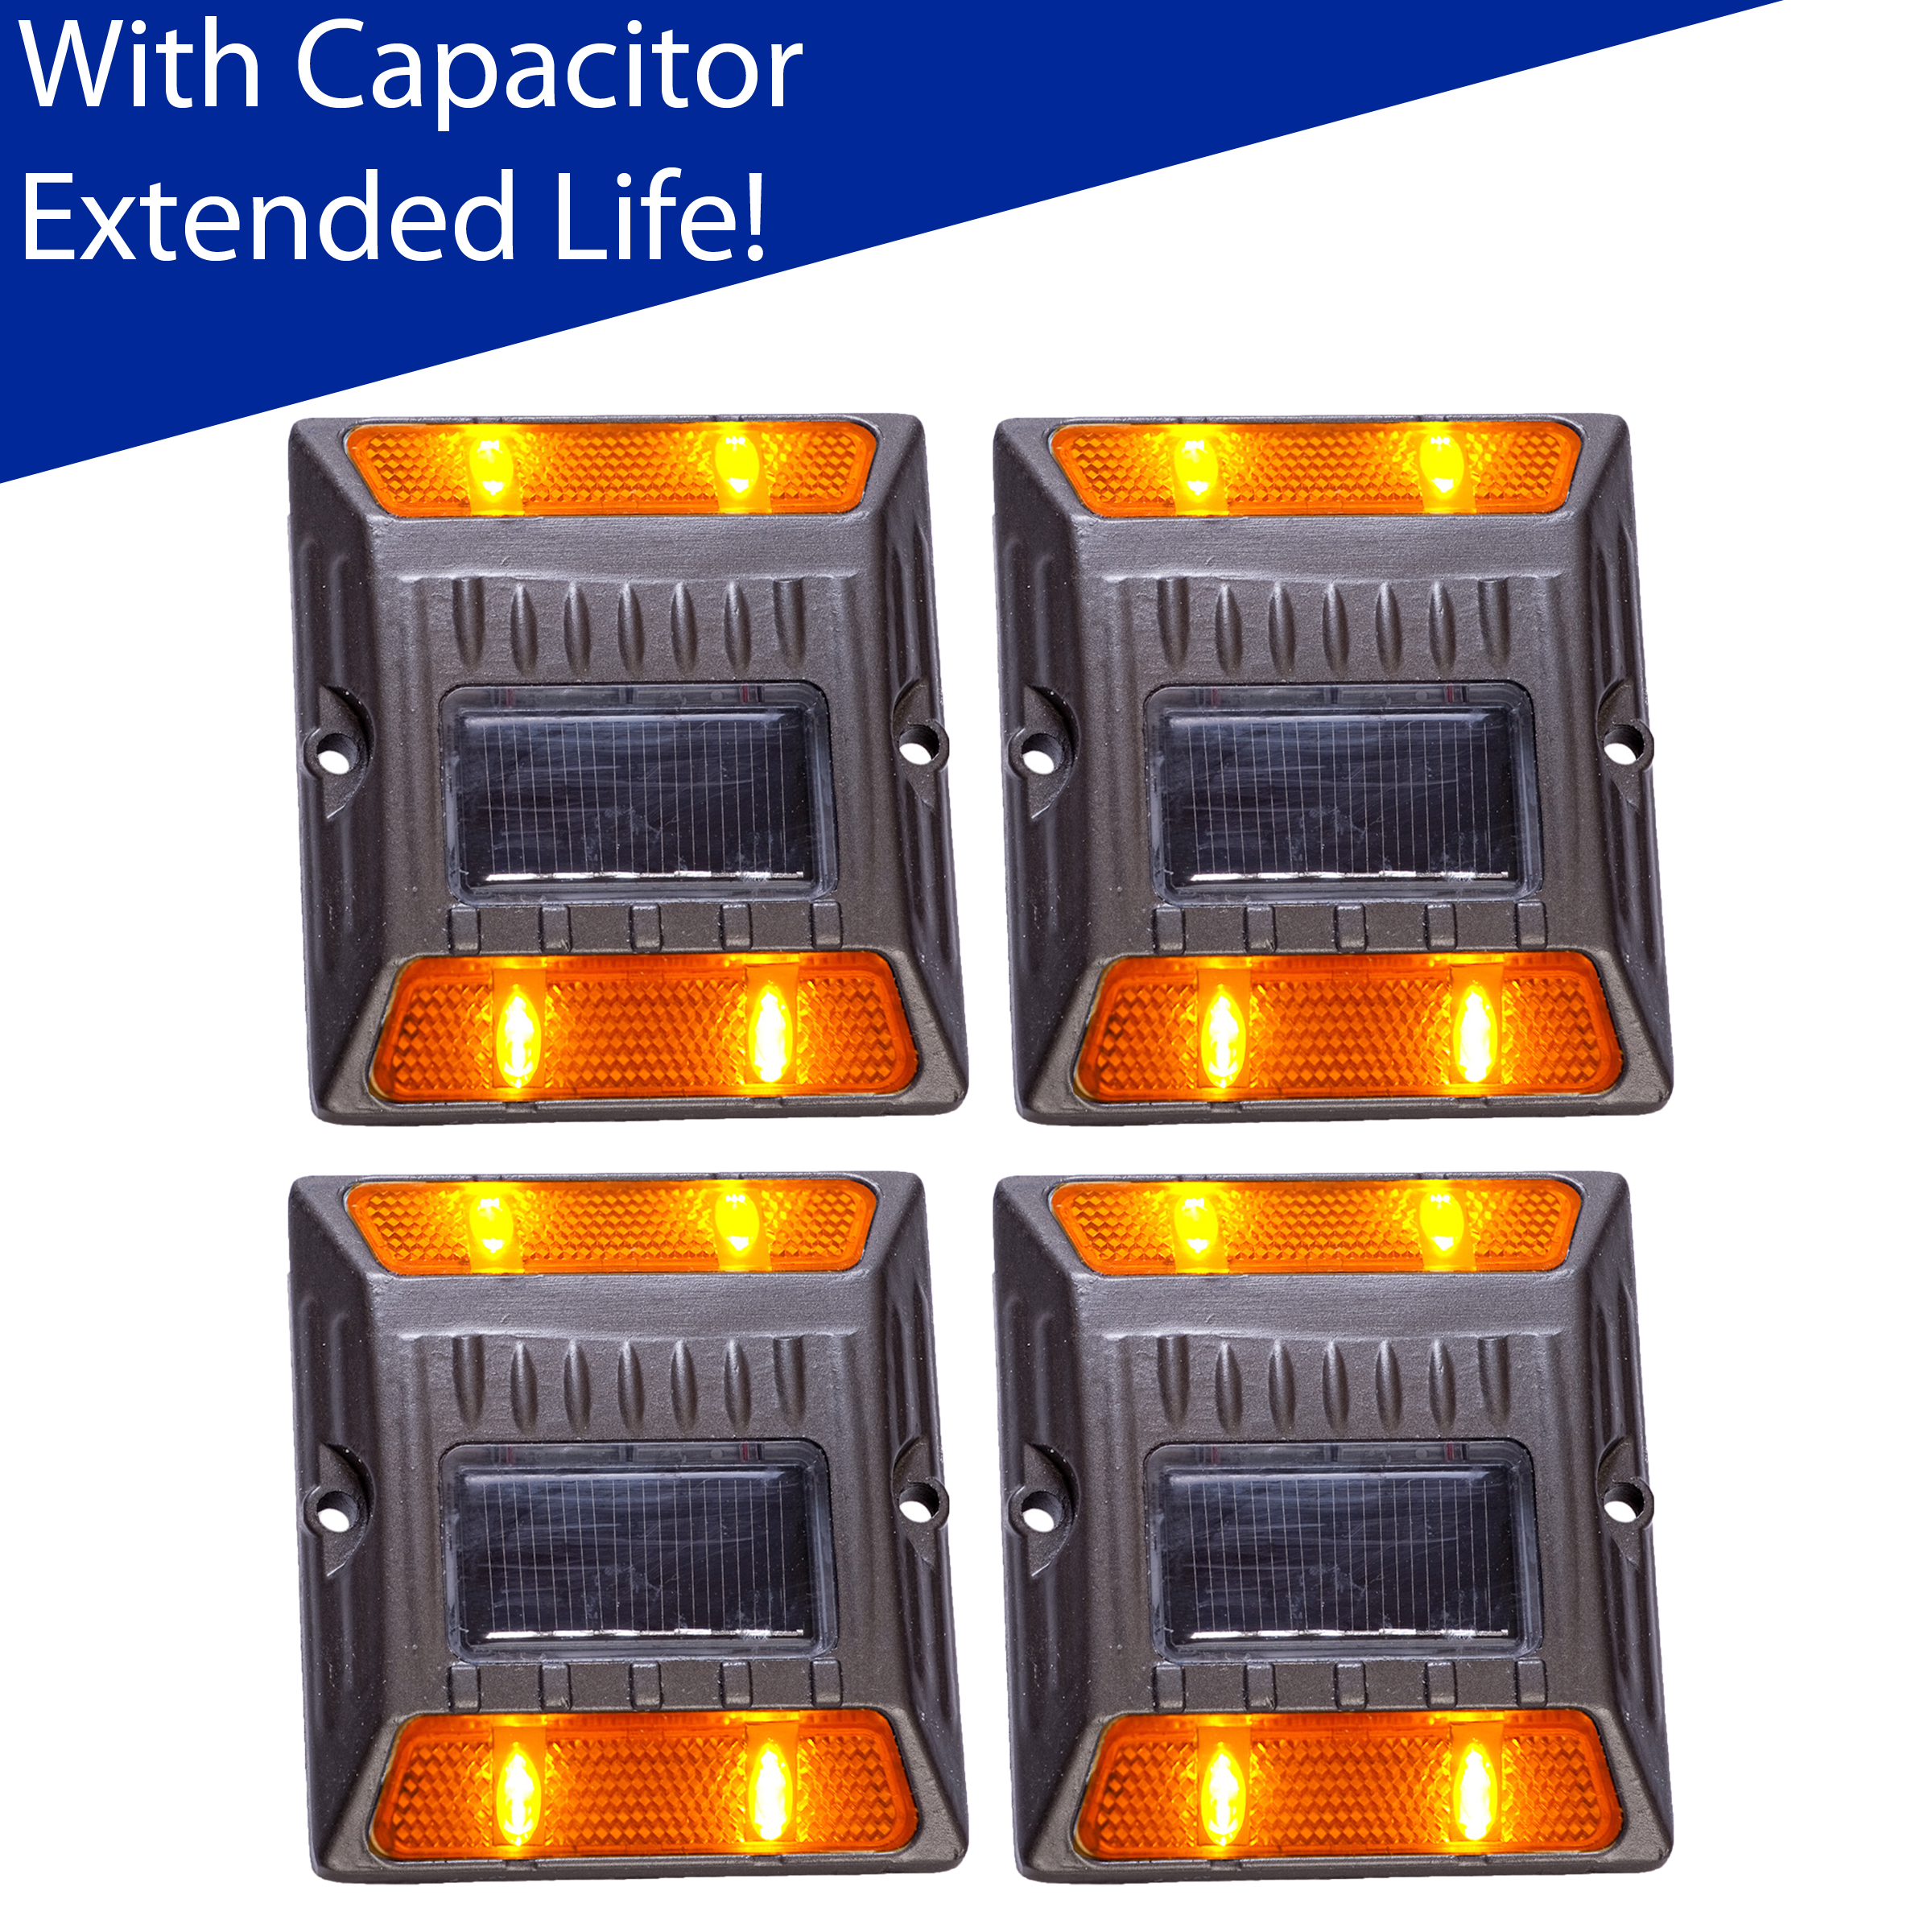 Reusable Revolution (4 Pack) Amber Alloy Solar Road Stud Path Deck Dock LED Light With Capacitor at Sears.com